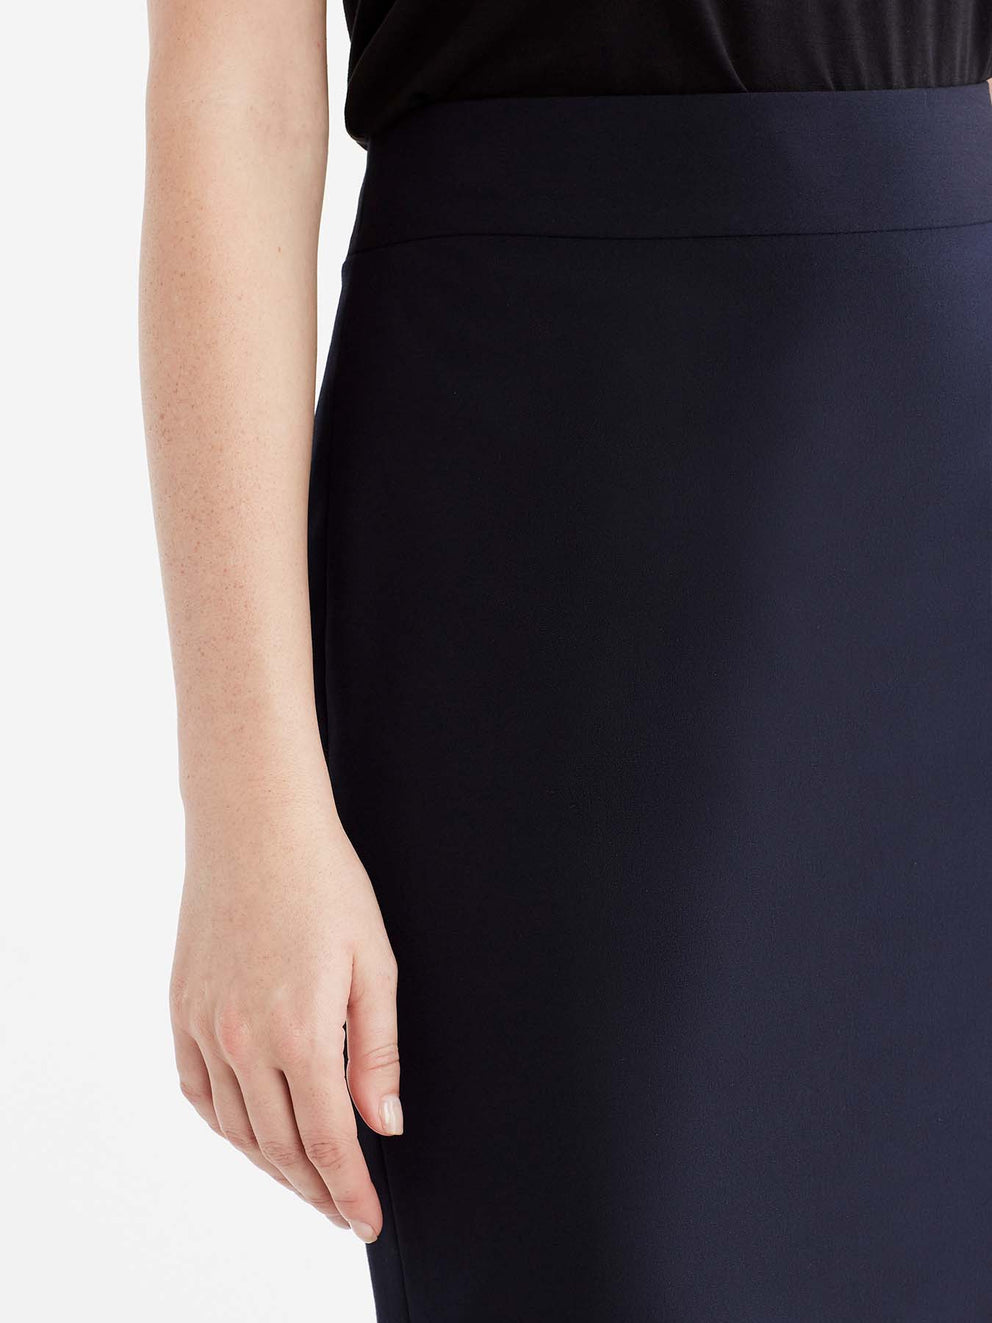 The Jones New York Washable Pencil Skirt in color Navy - Image Position 3